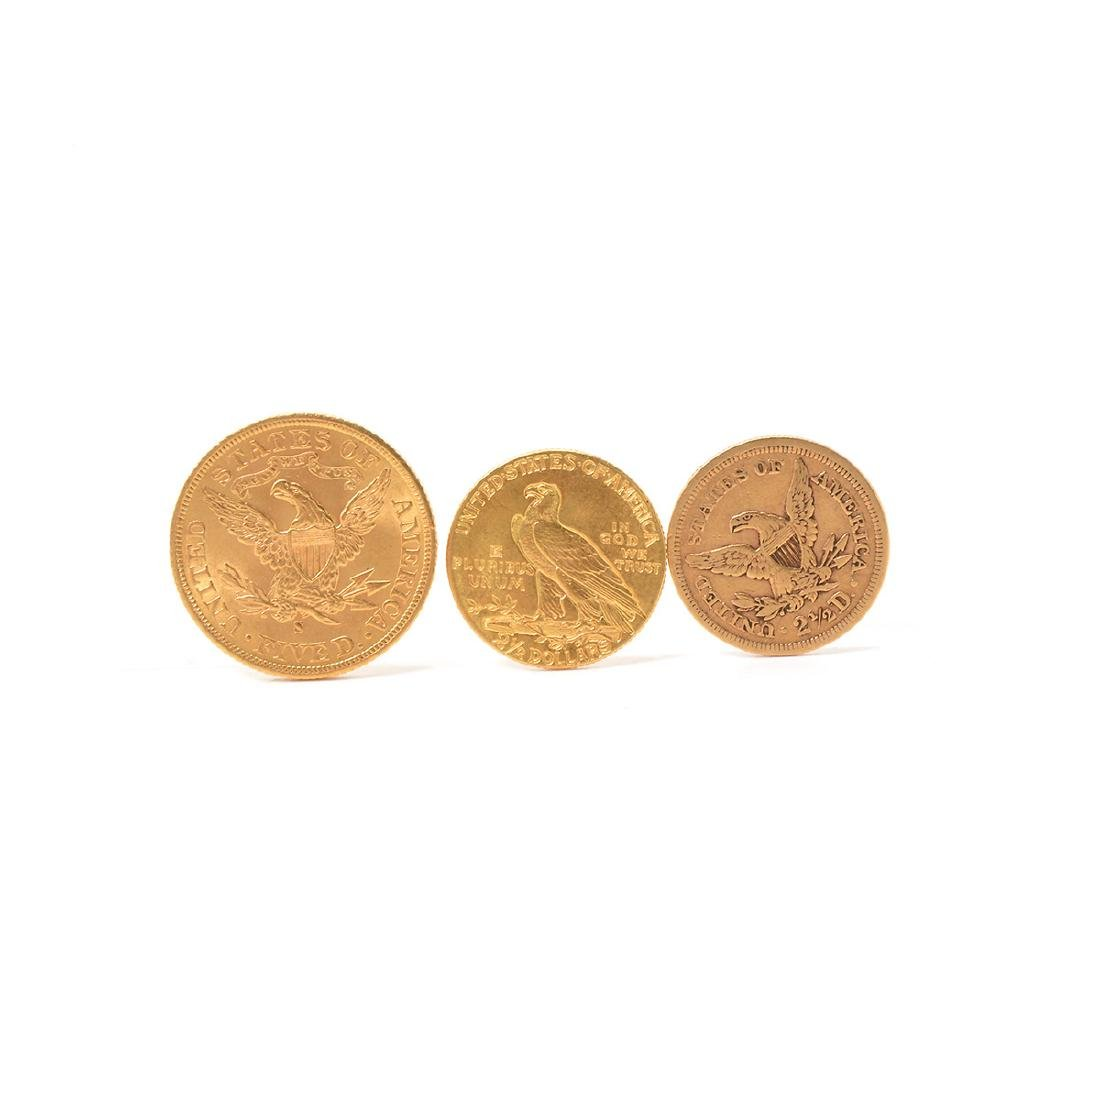 Lot of 3 US Gold Coins - 2